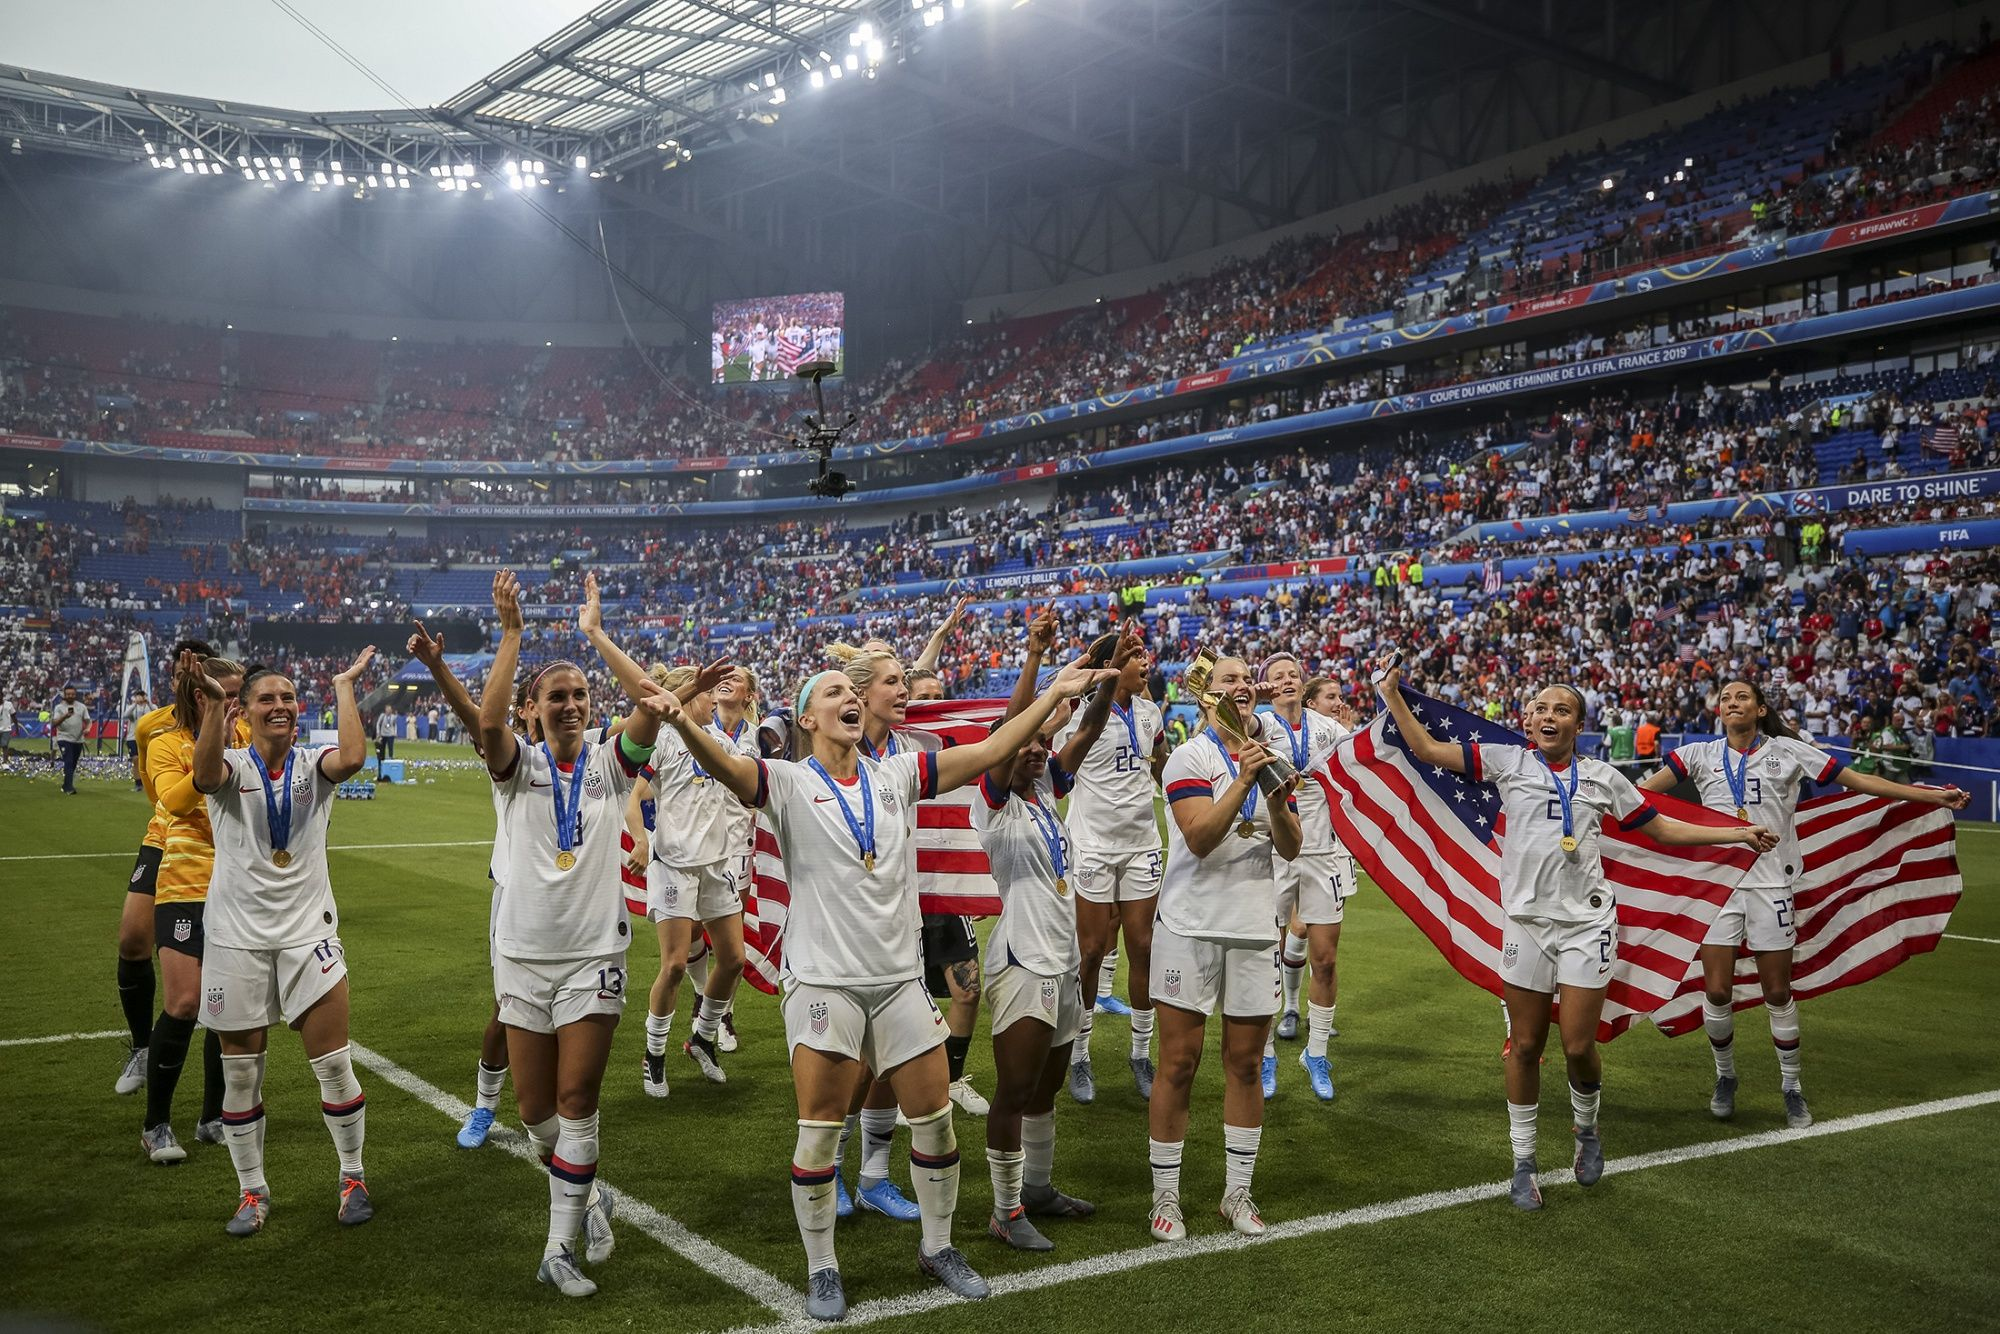 U.S. Women's World Cup Win Tops Men's Final Ratings by 20%